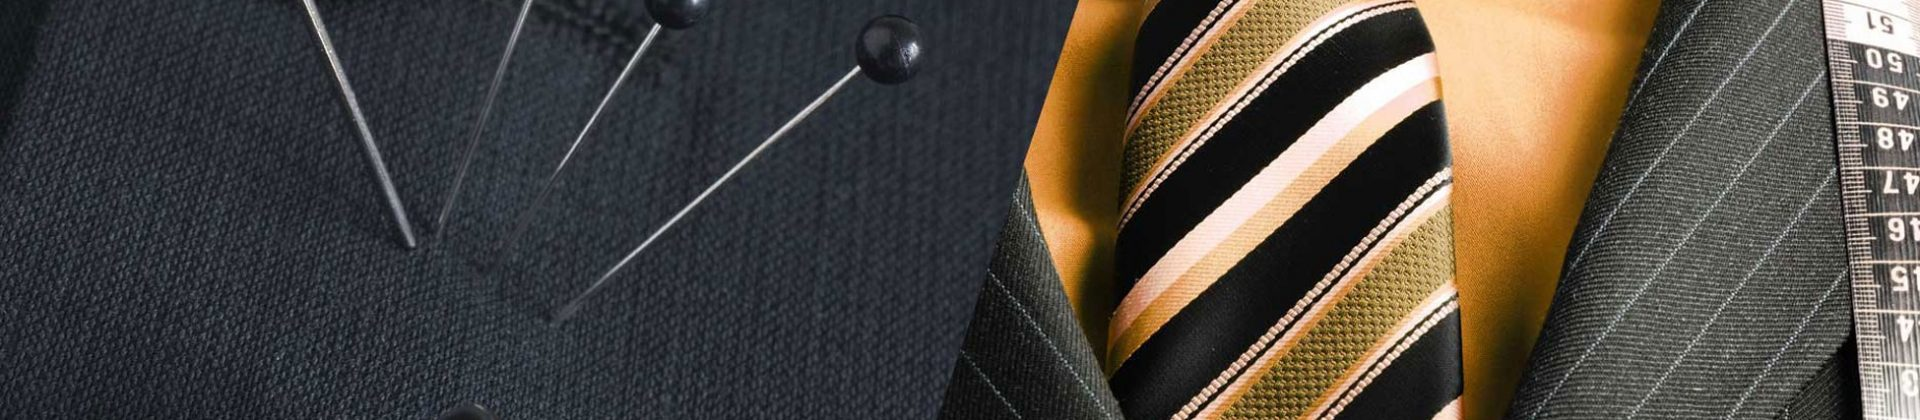 CHOOSE THE RIGHT TAILOR